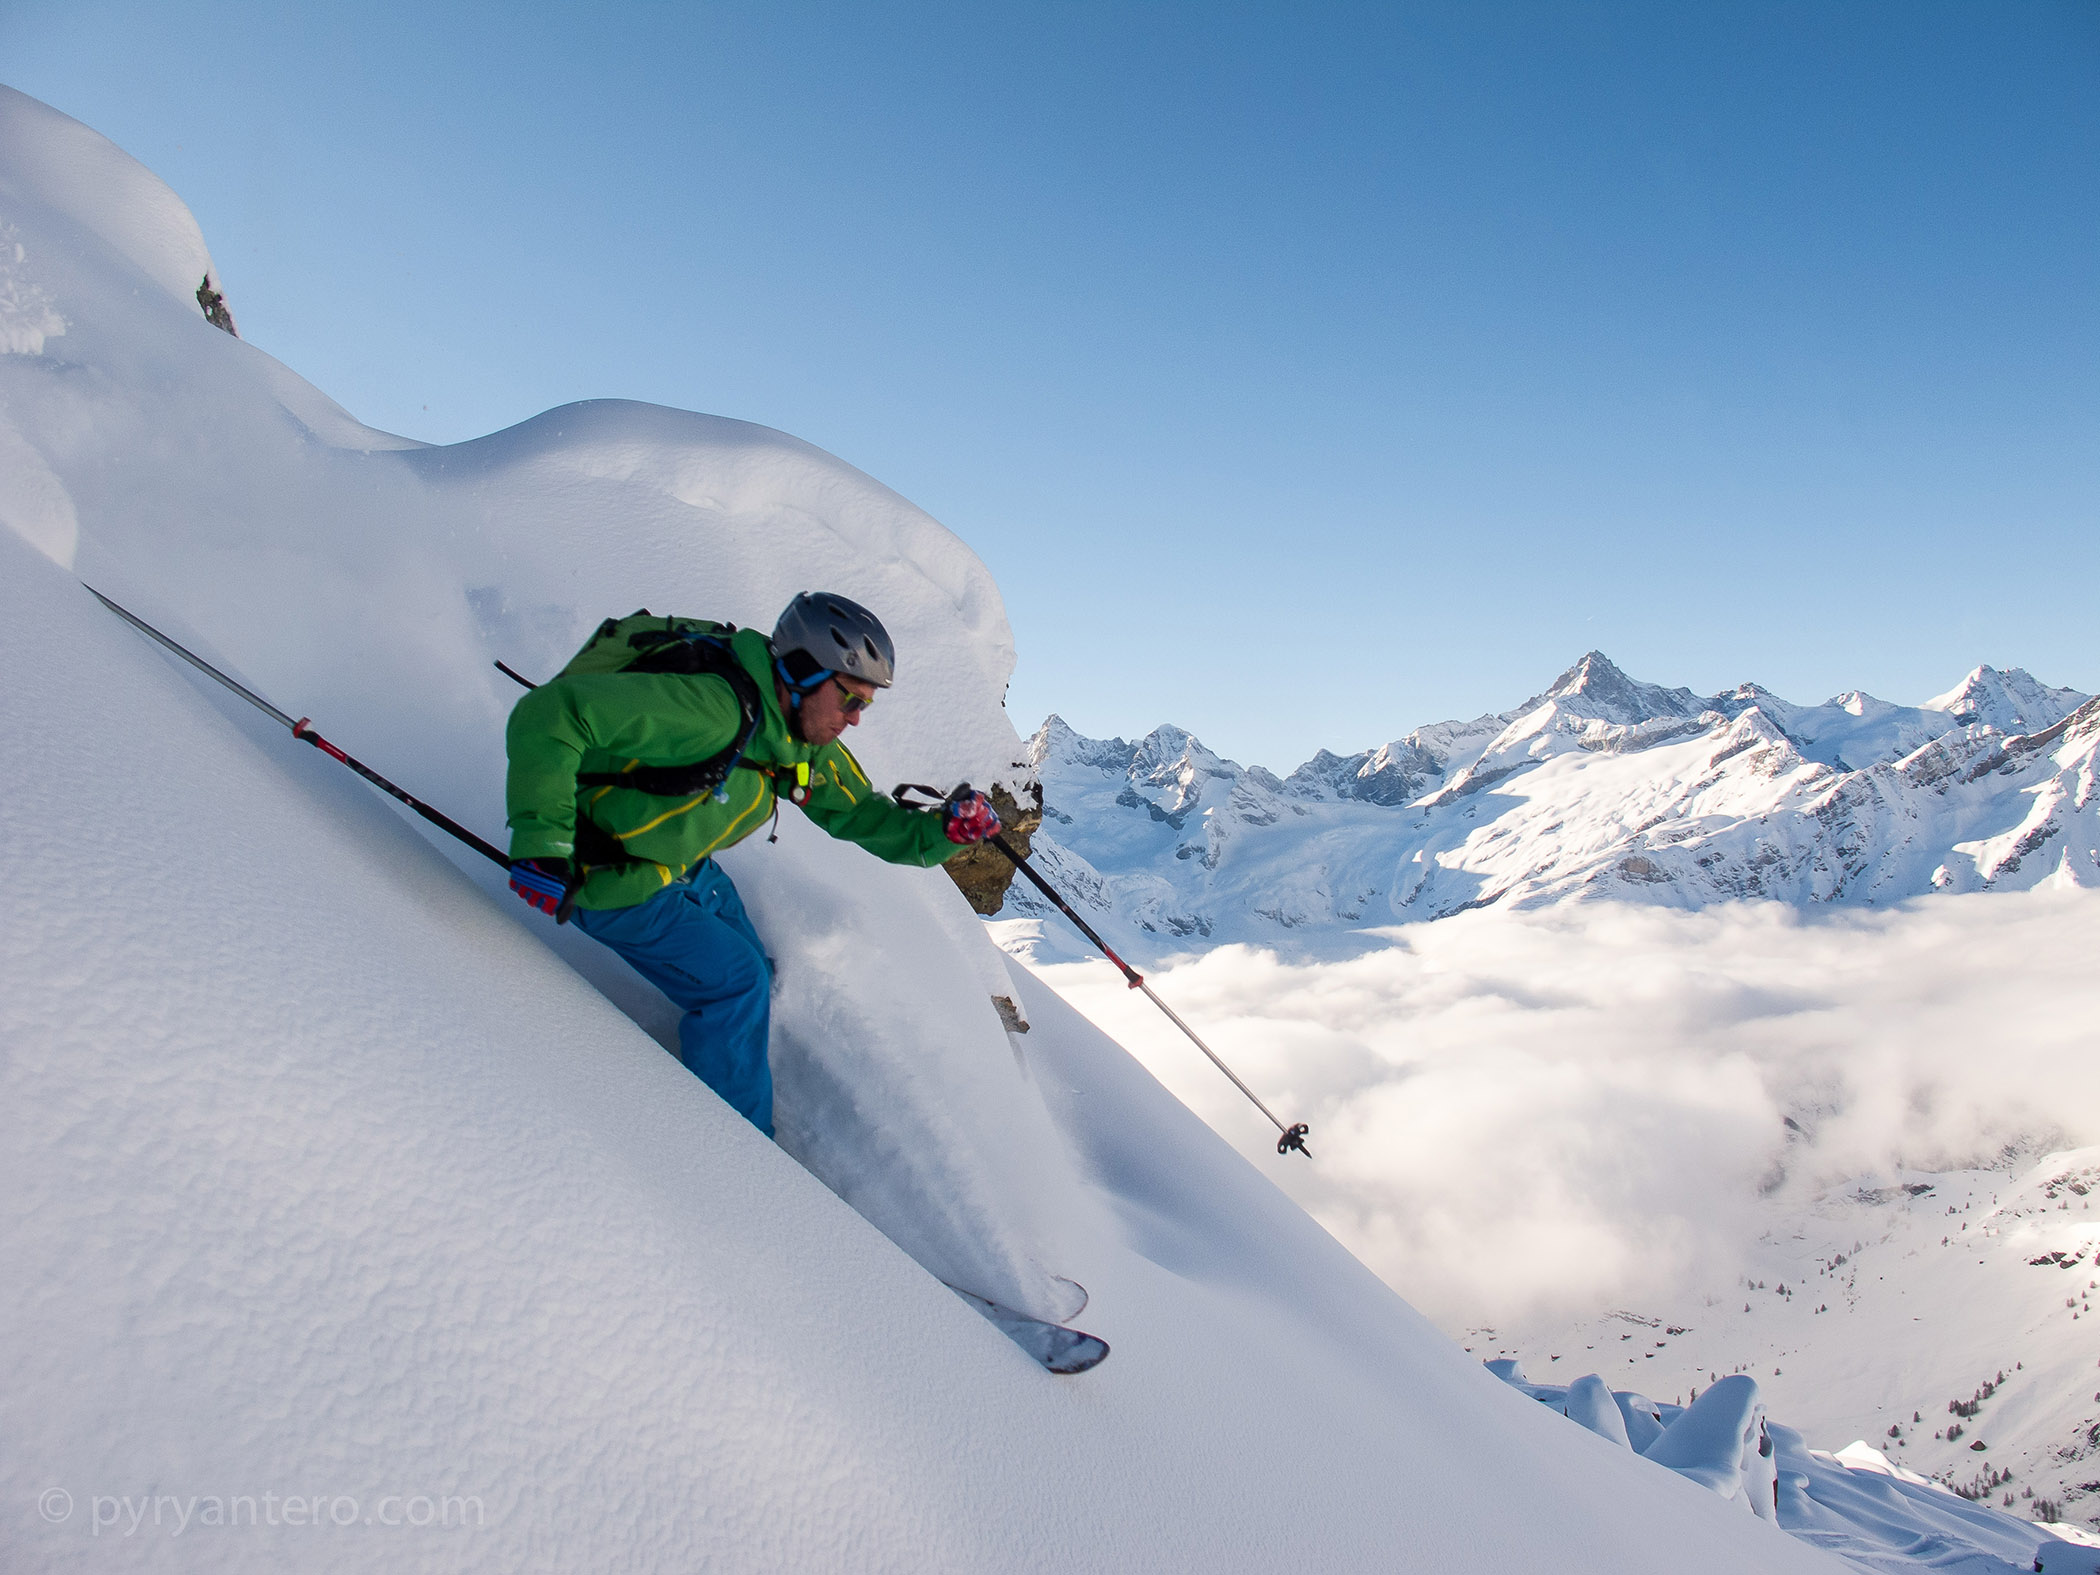 Skiing in powder in the French Alps, © Pyry Antero Photography, Pyry Pietiläinen